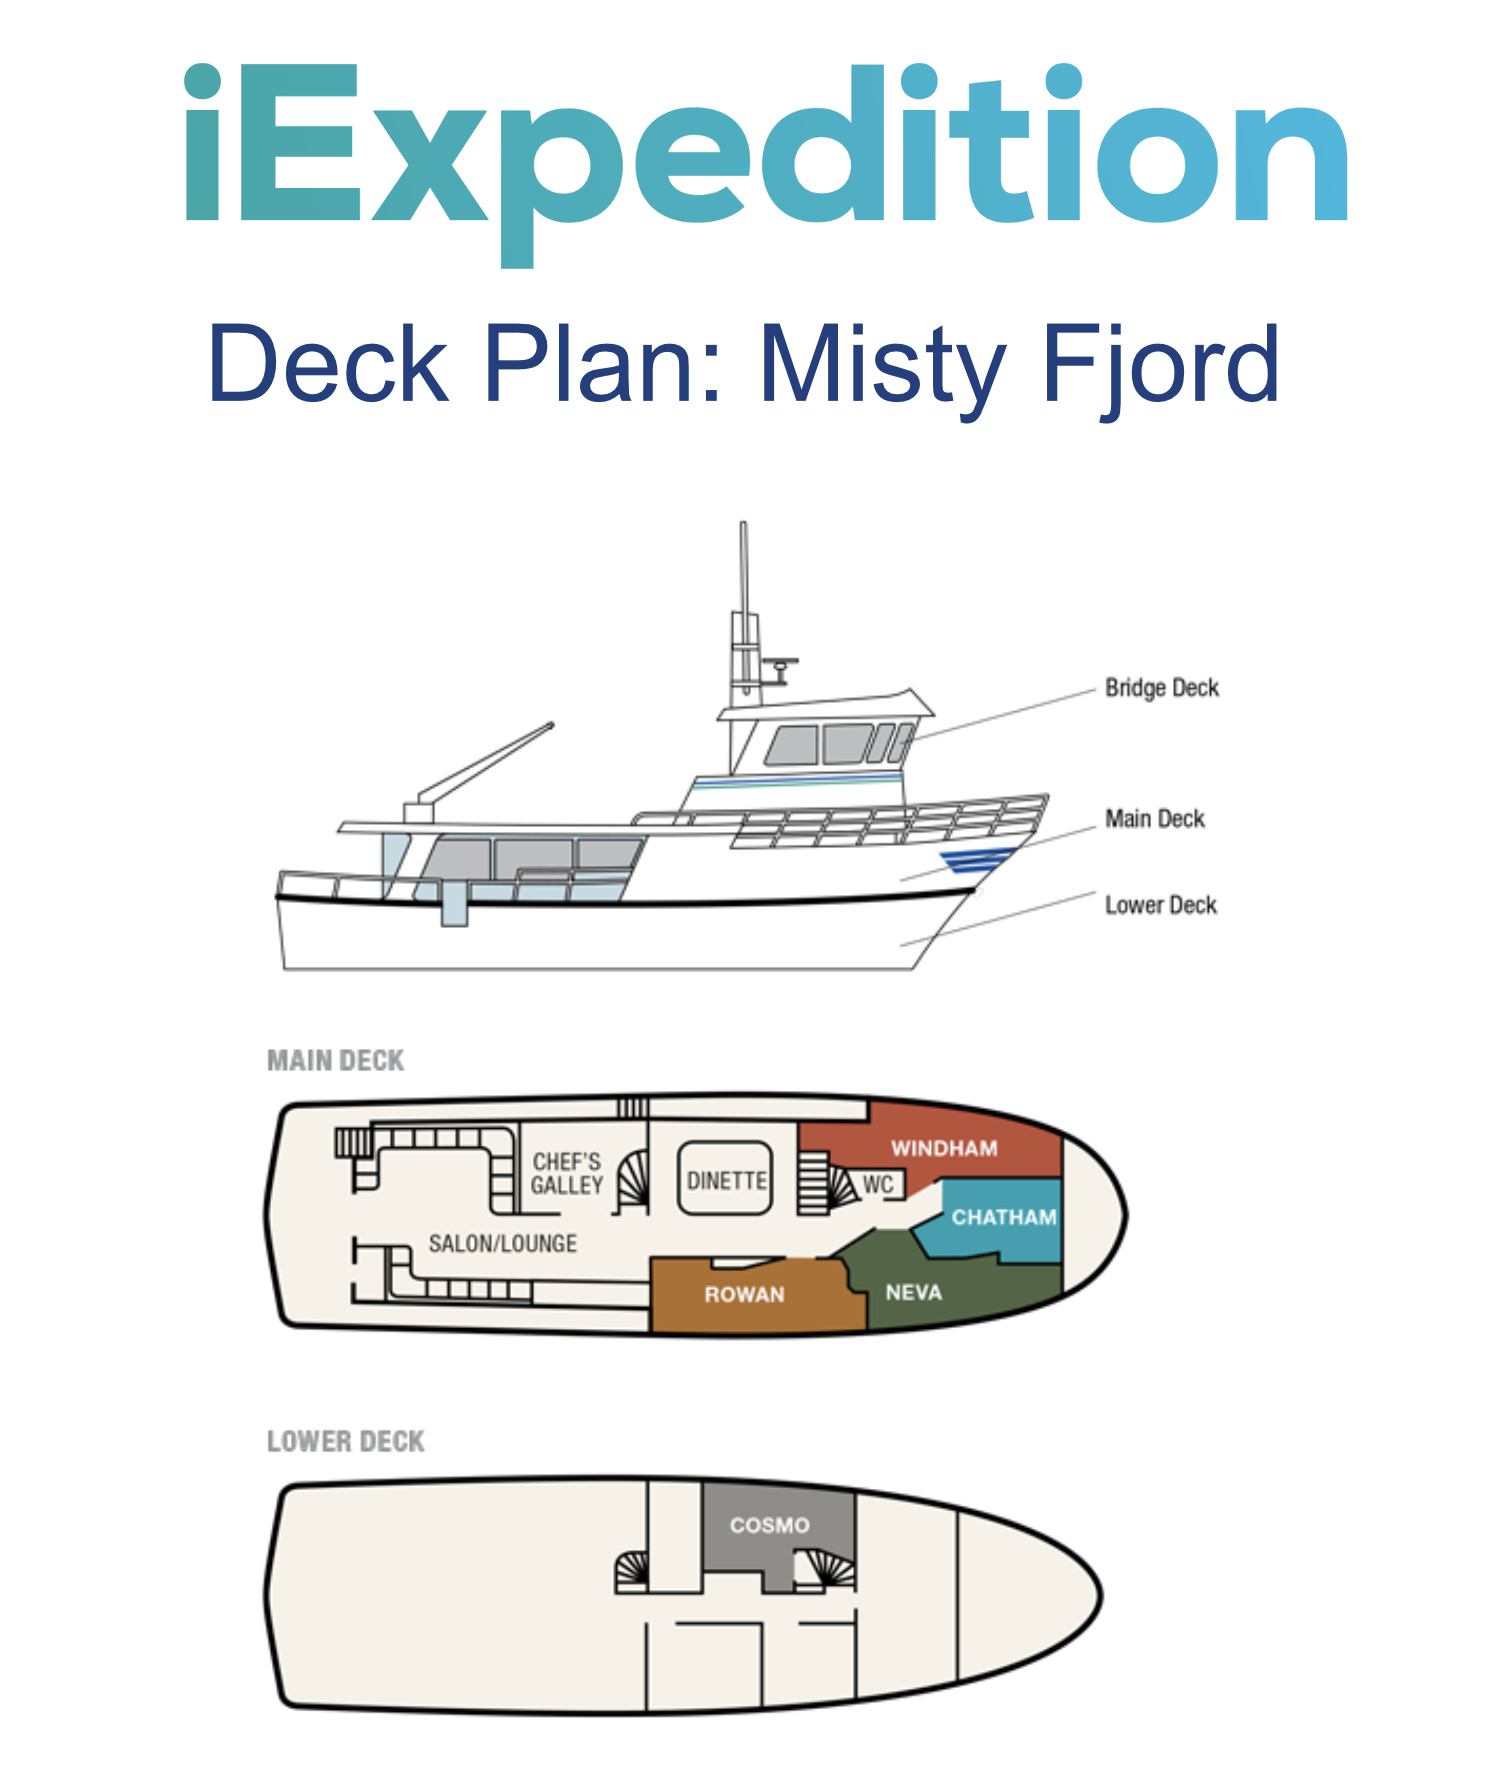 Misty fjord deck plan